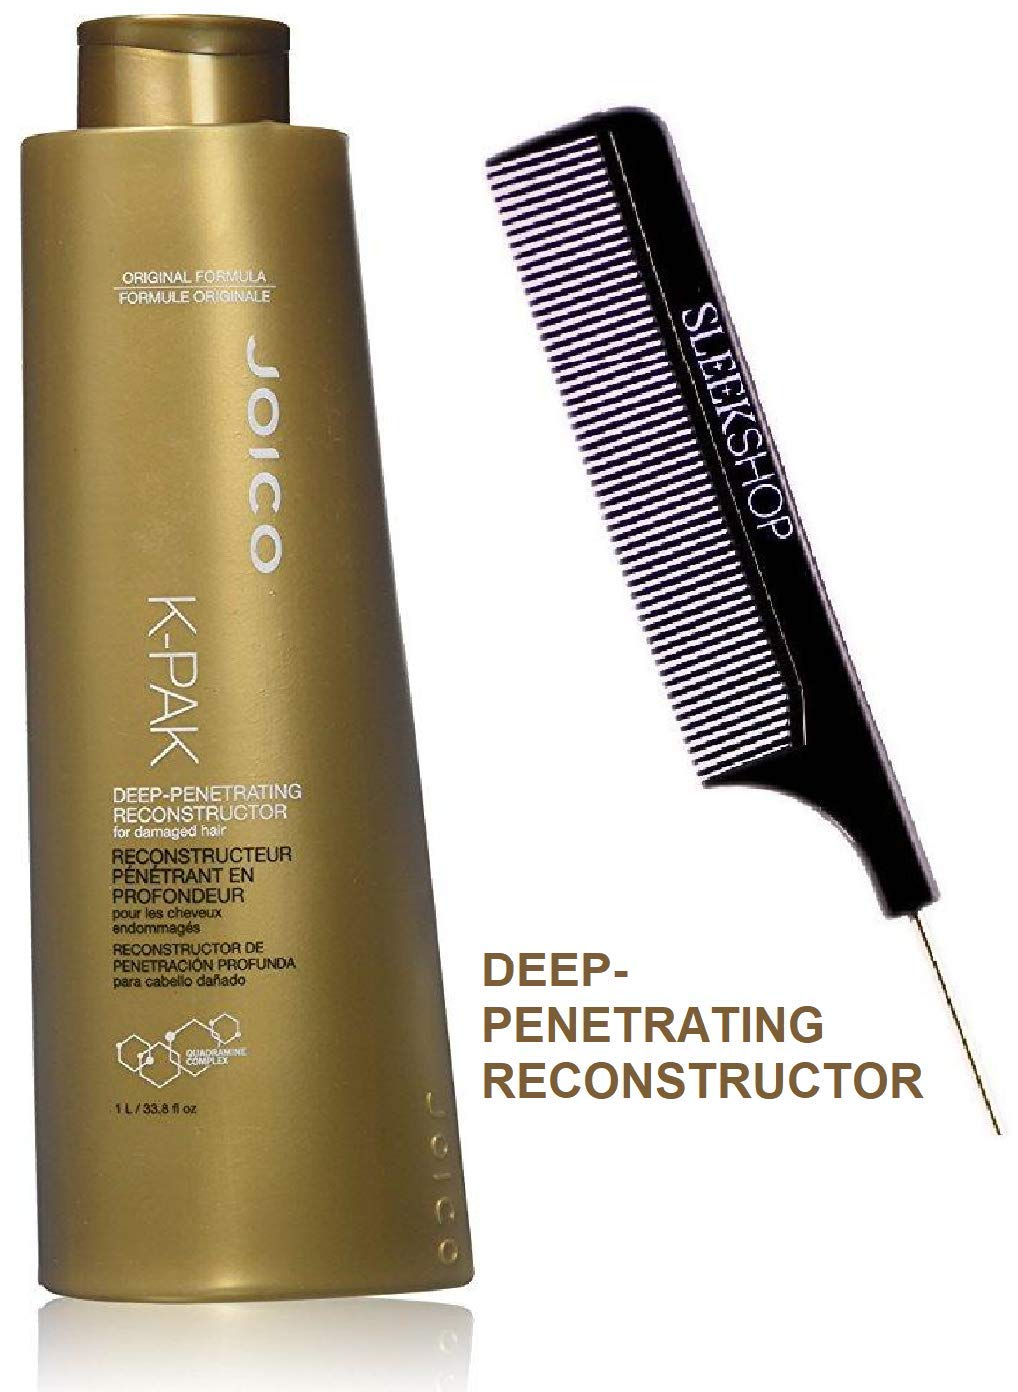 Joico K-PAK DEEP-PENETRATING RECONSTRUCTOR for Damaged Hair, ORIGINAL FORMULA STYLIST KIT K PACK Quadramine Complex 8.5 oz 250 ml – BONUS SIZE